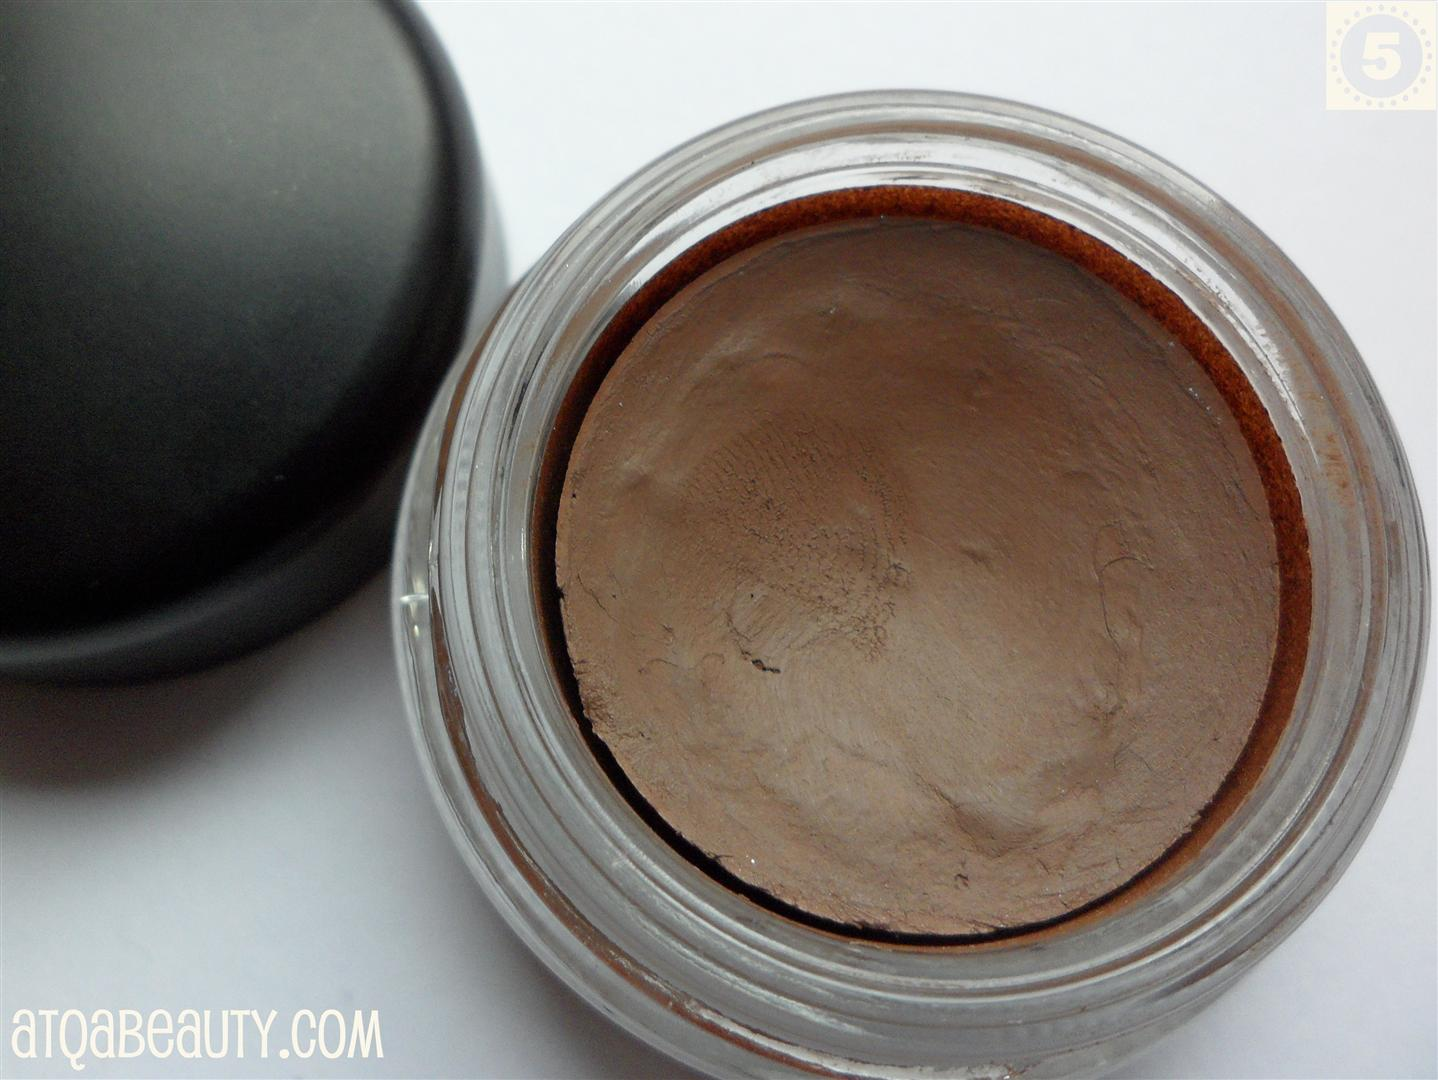 Atqa beauty blog makija kremowe for Mac paint pot groundwork